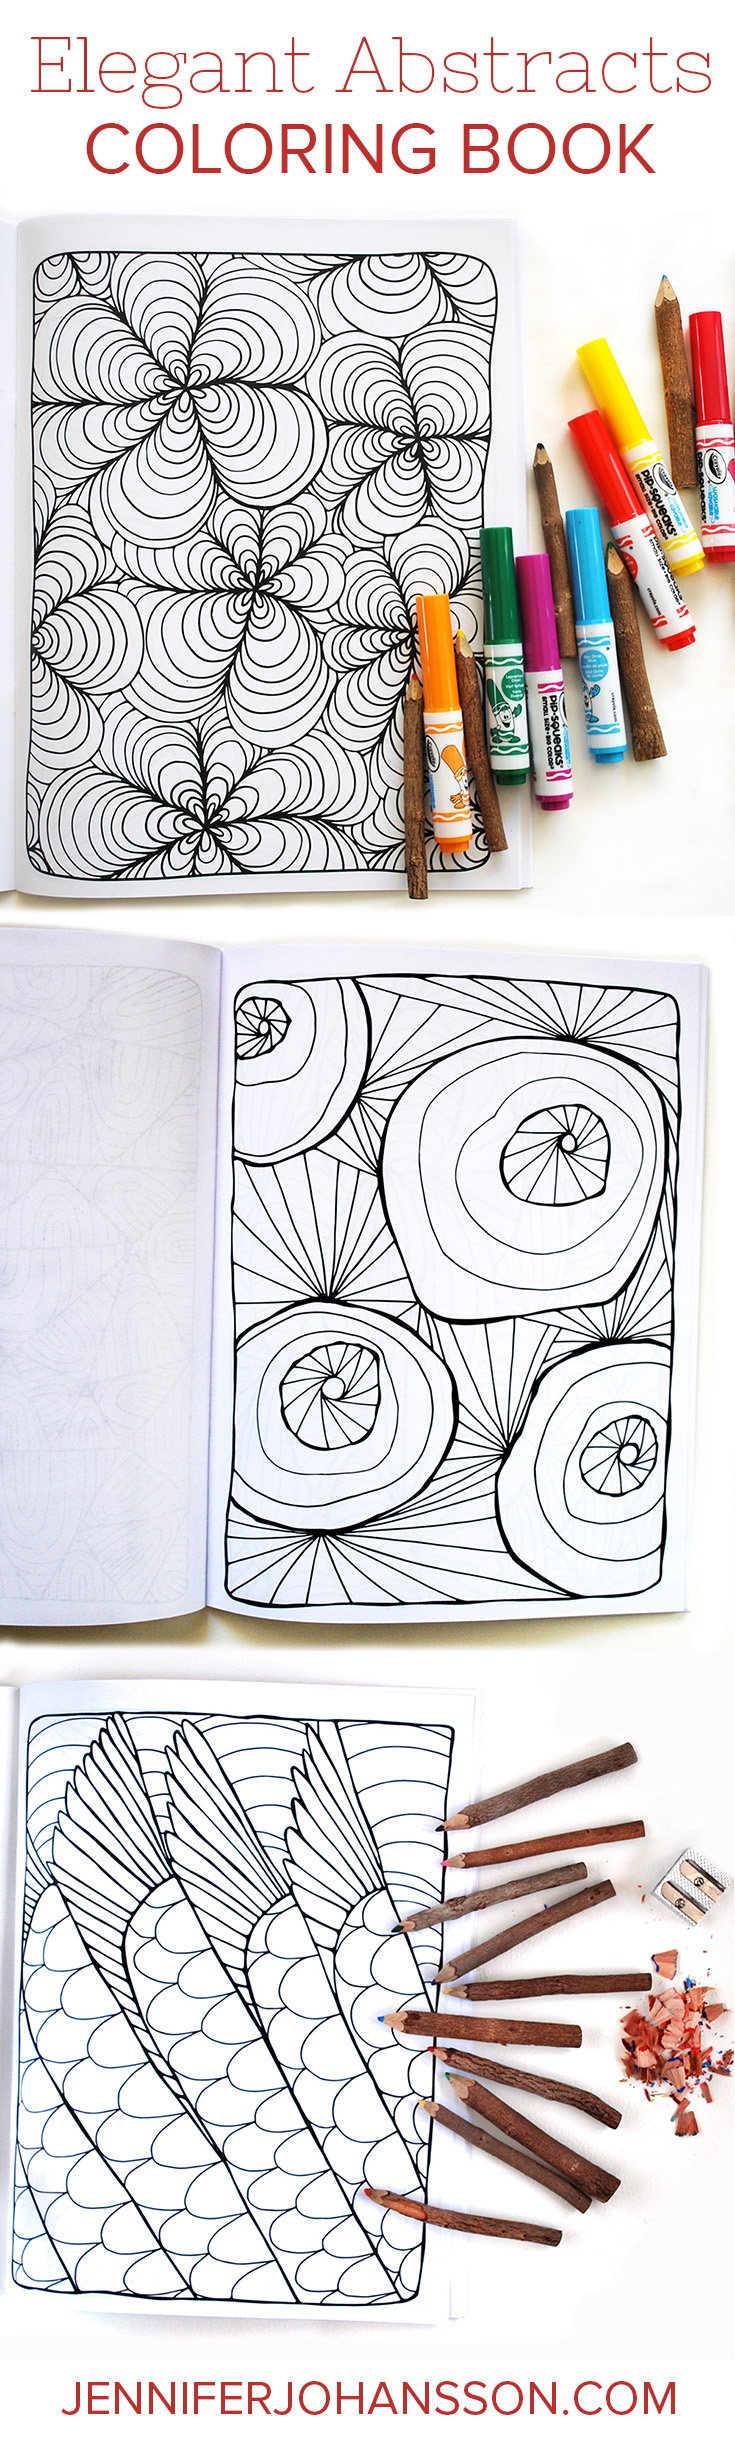 A sampling of pages from my newest coloring book.